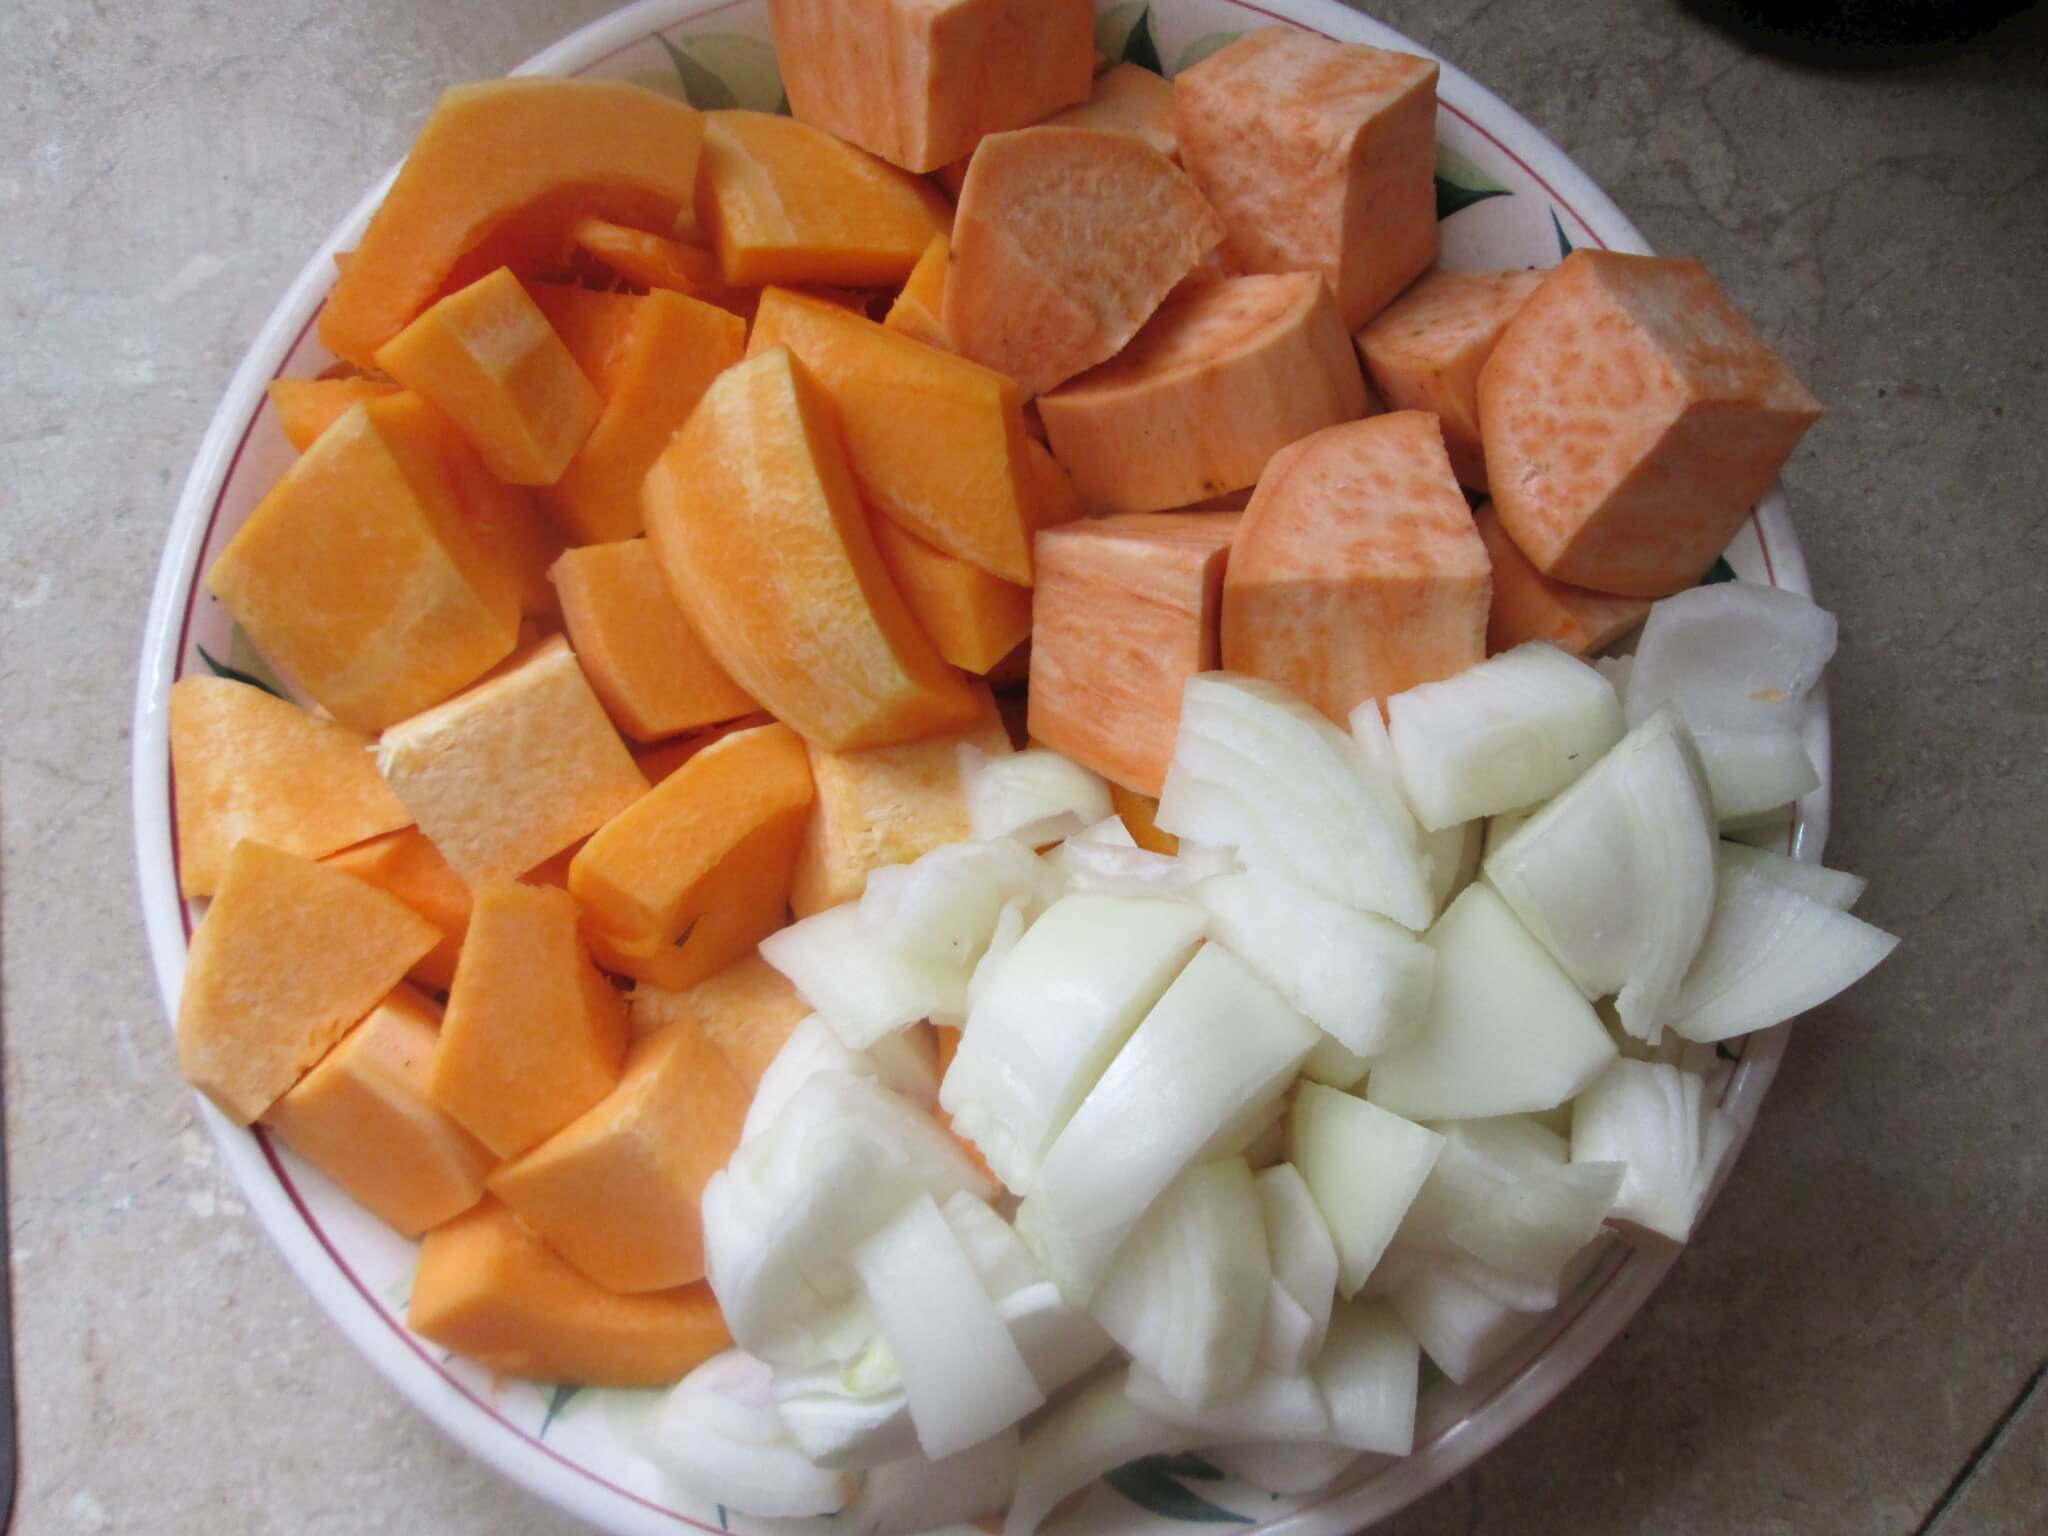 Spiced Root Vegetable Soup Recipe - 1 sweet potatoes, squash and onions